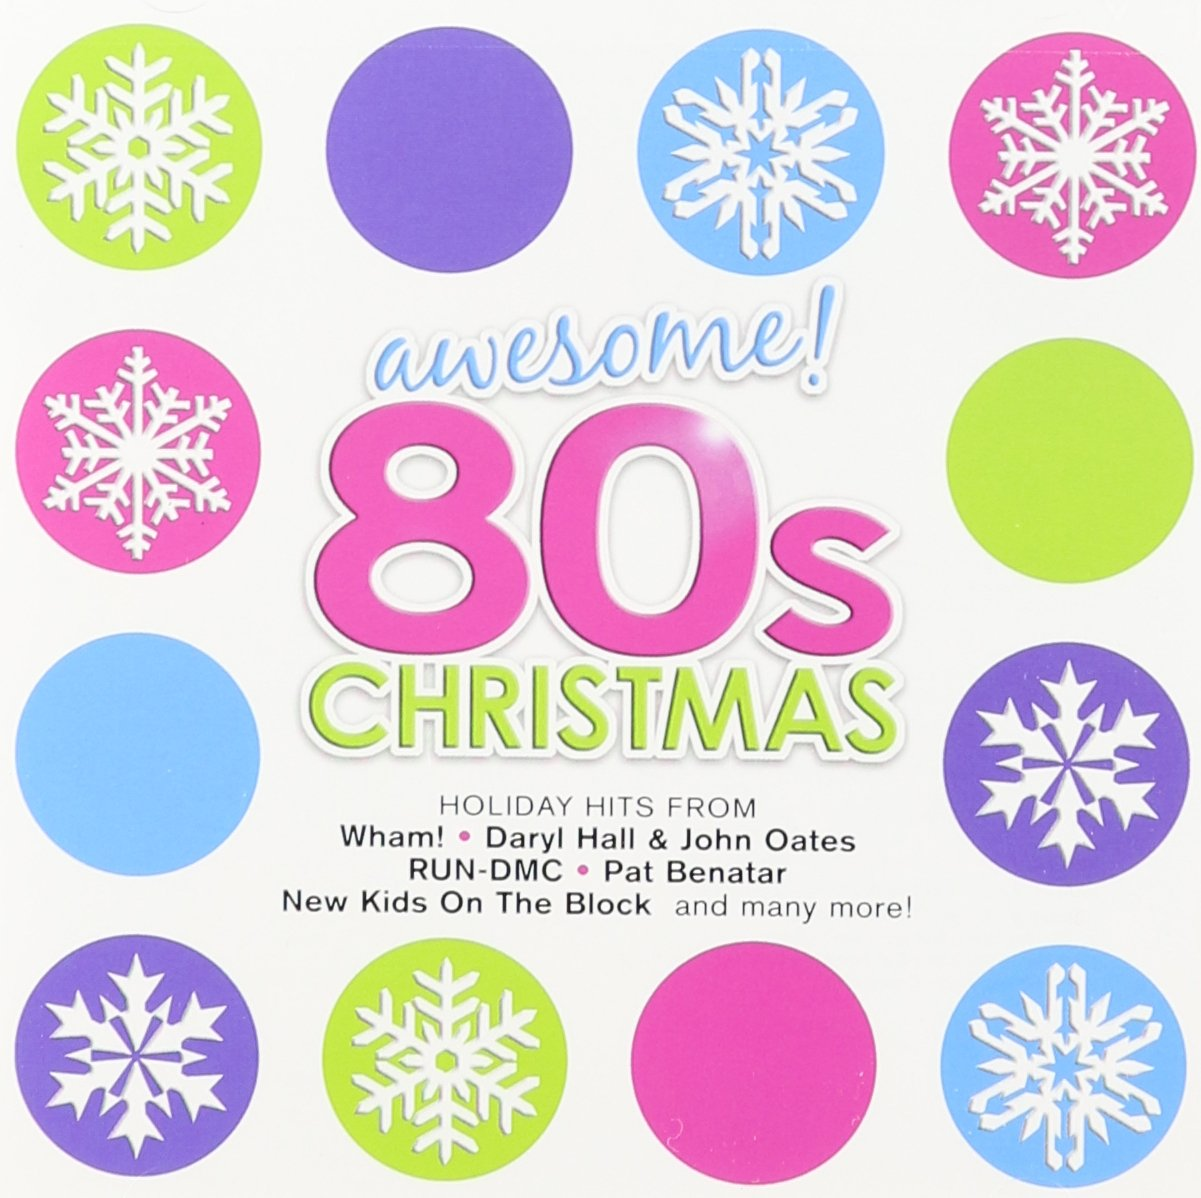 Amazon.com: Awesome 80s Christmas: Music